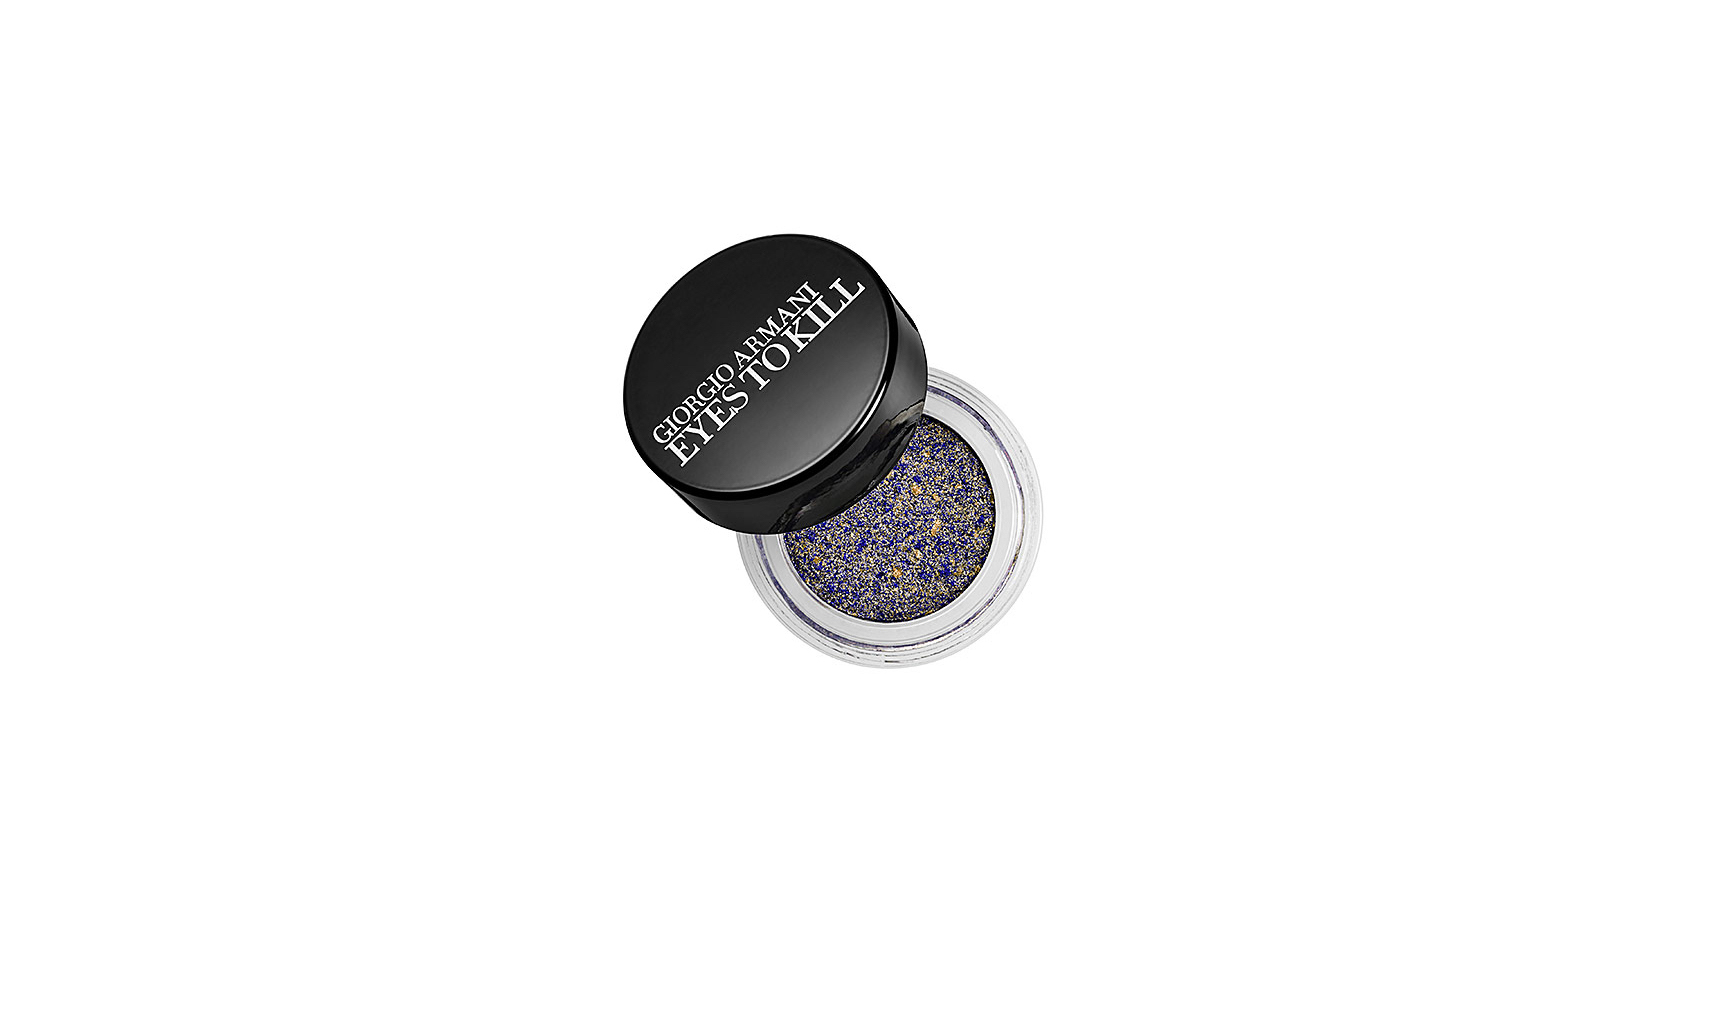 Giorgio Armani Eyes to Kill Eyeshadow